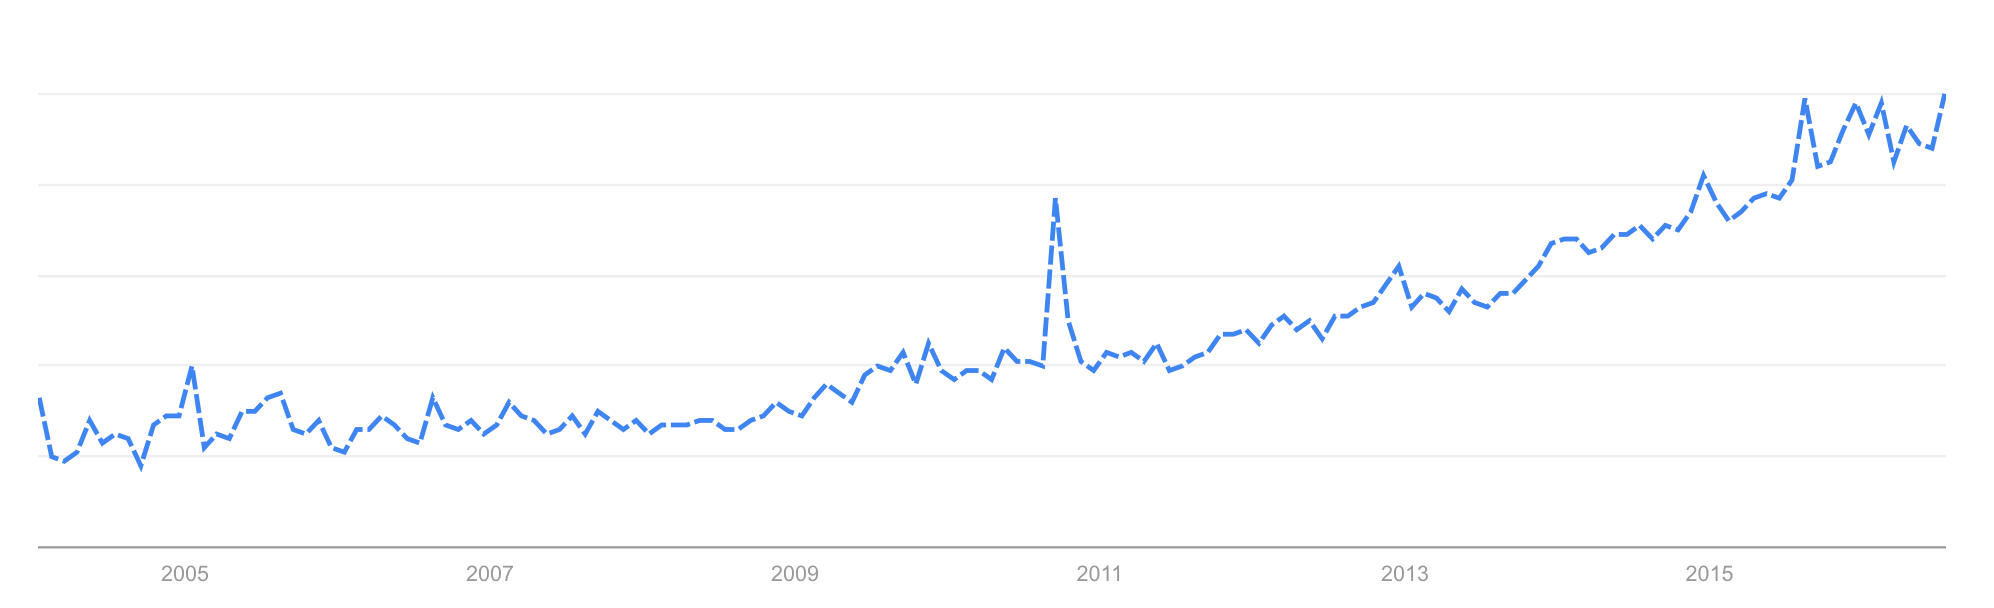 Overlapping circle grid © Google trends